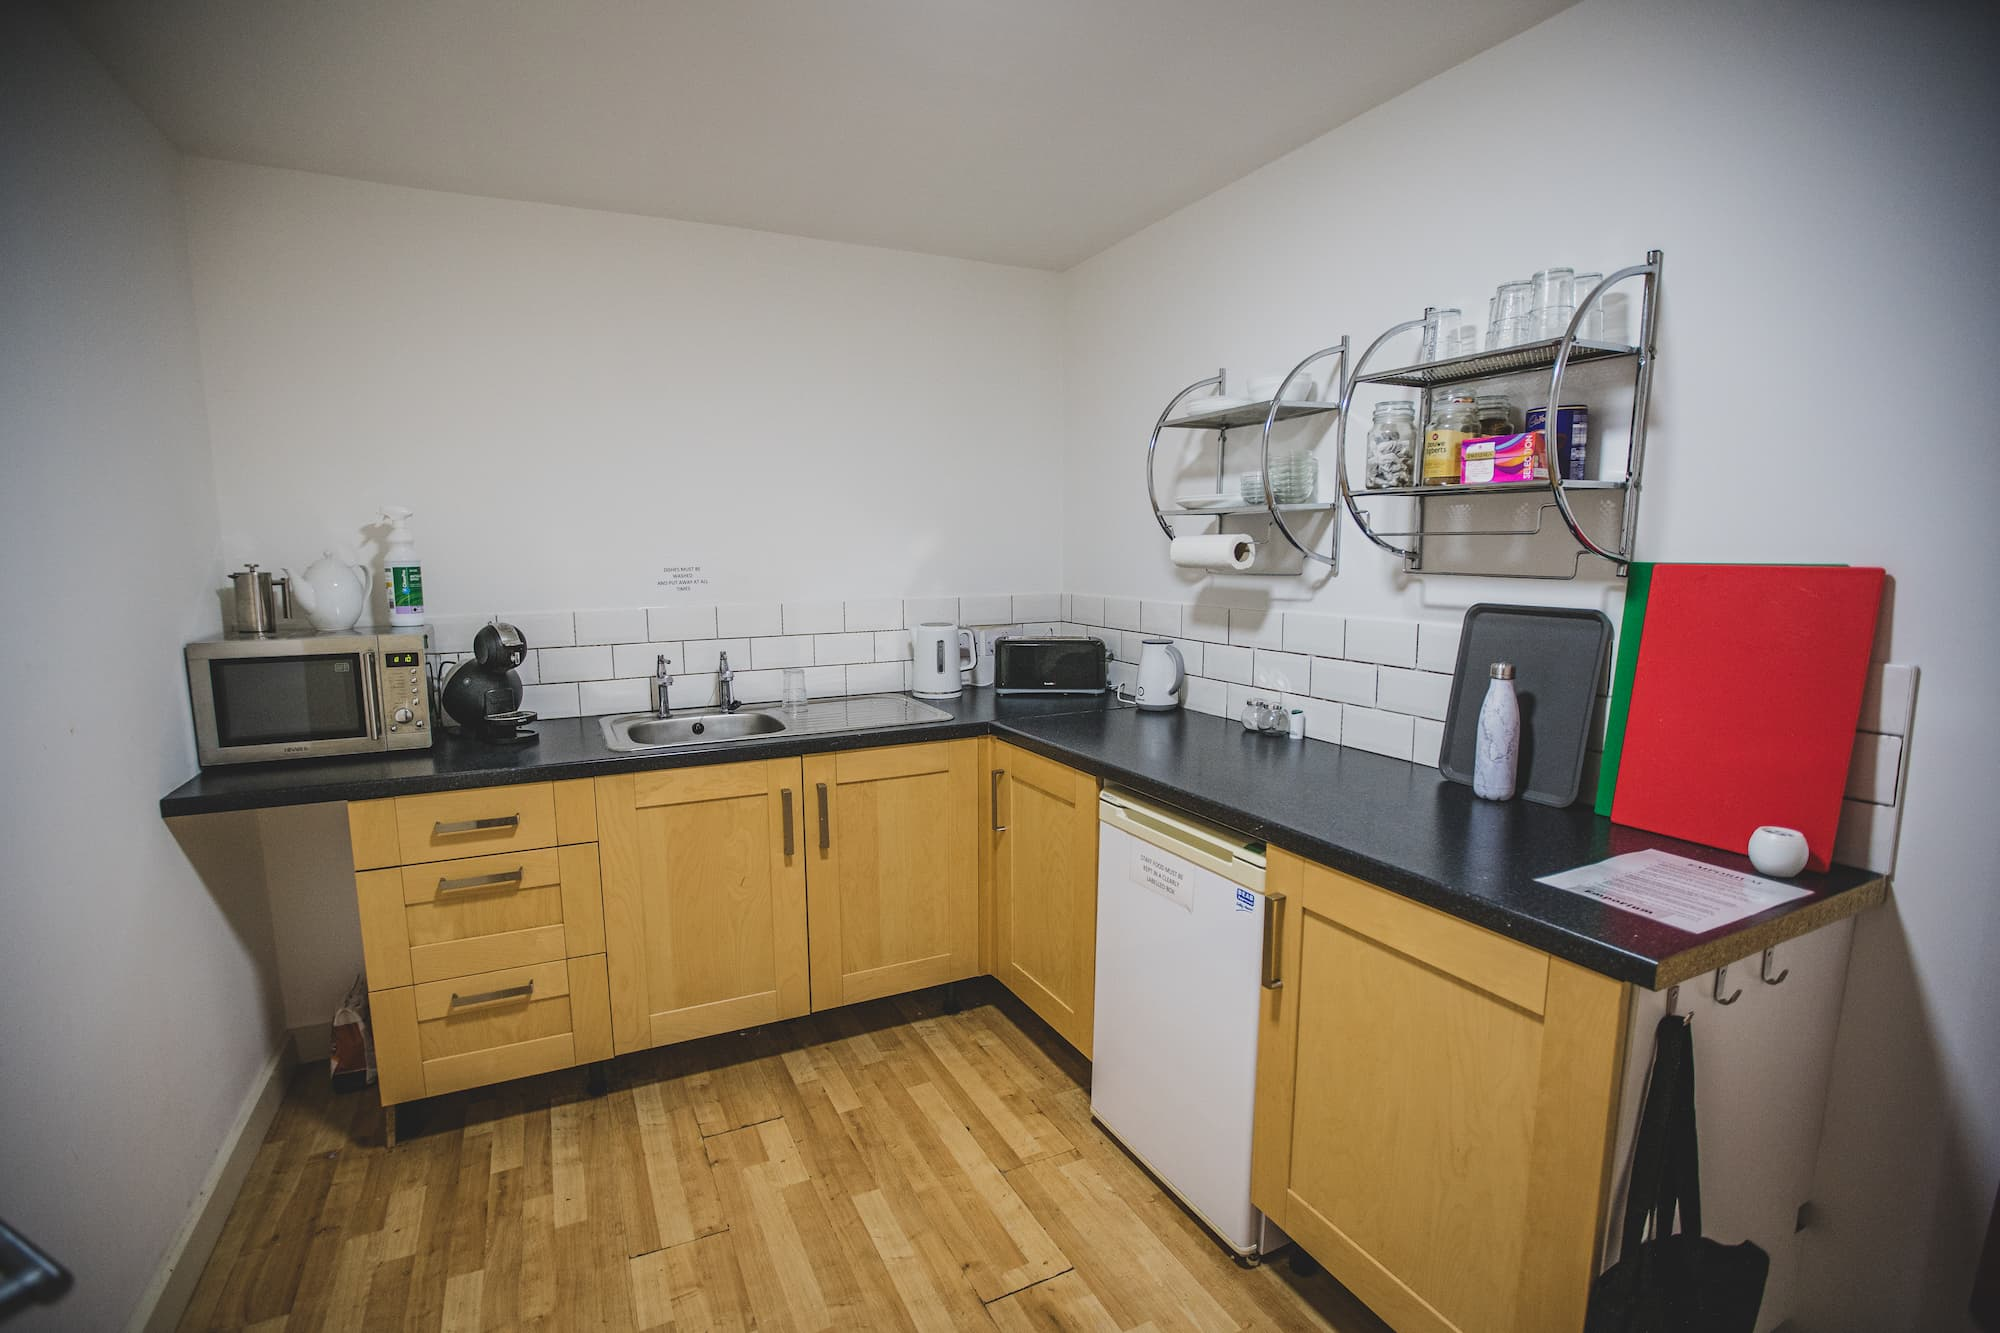 A corner kitchen with a sink, worktop space, a fridge and a microwave.